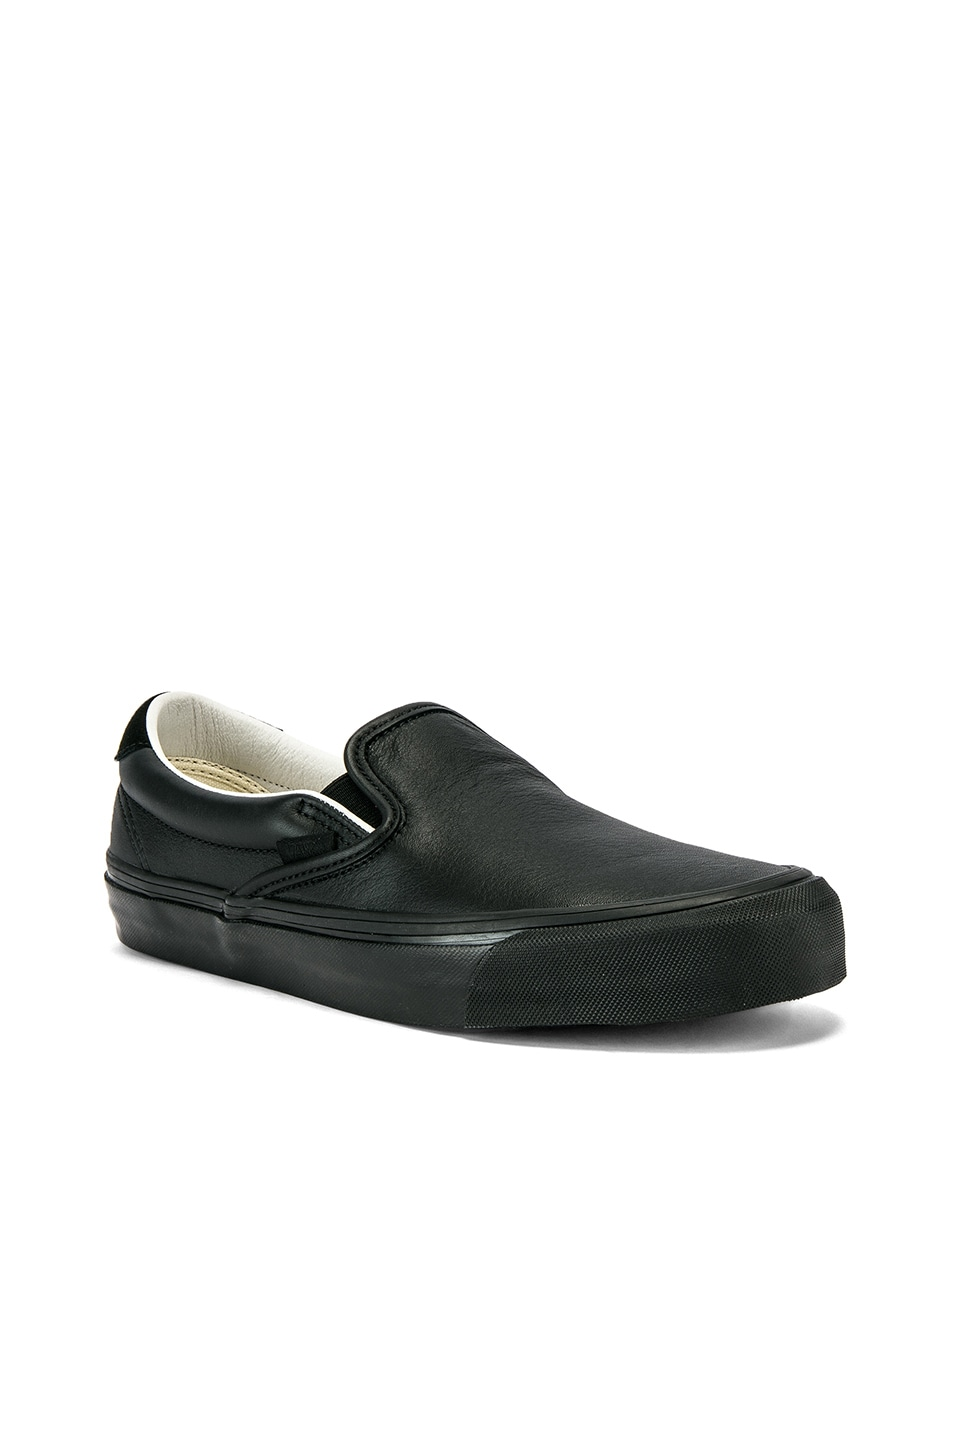 Image 2 of Vans Vault OG Slip-On 59 LX in Black